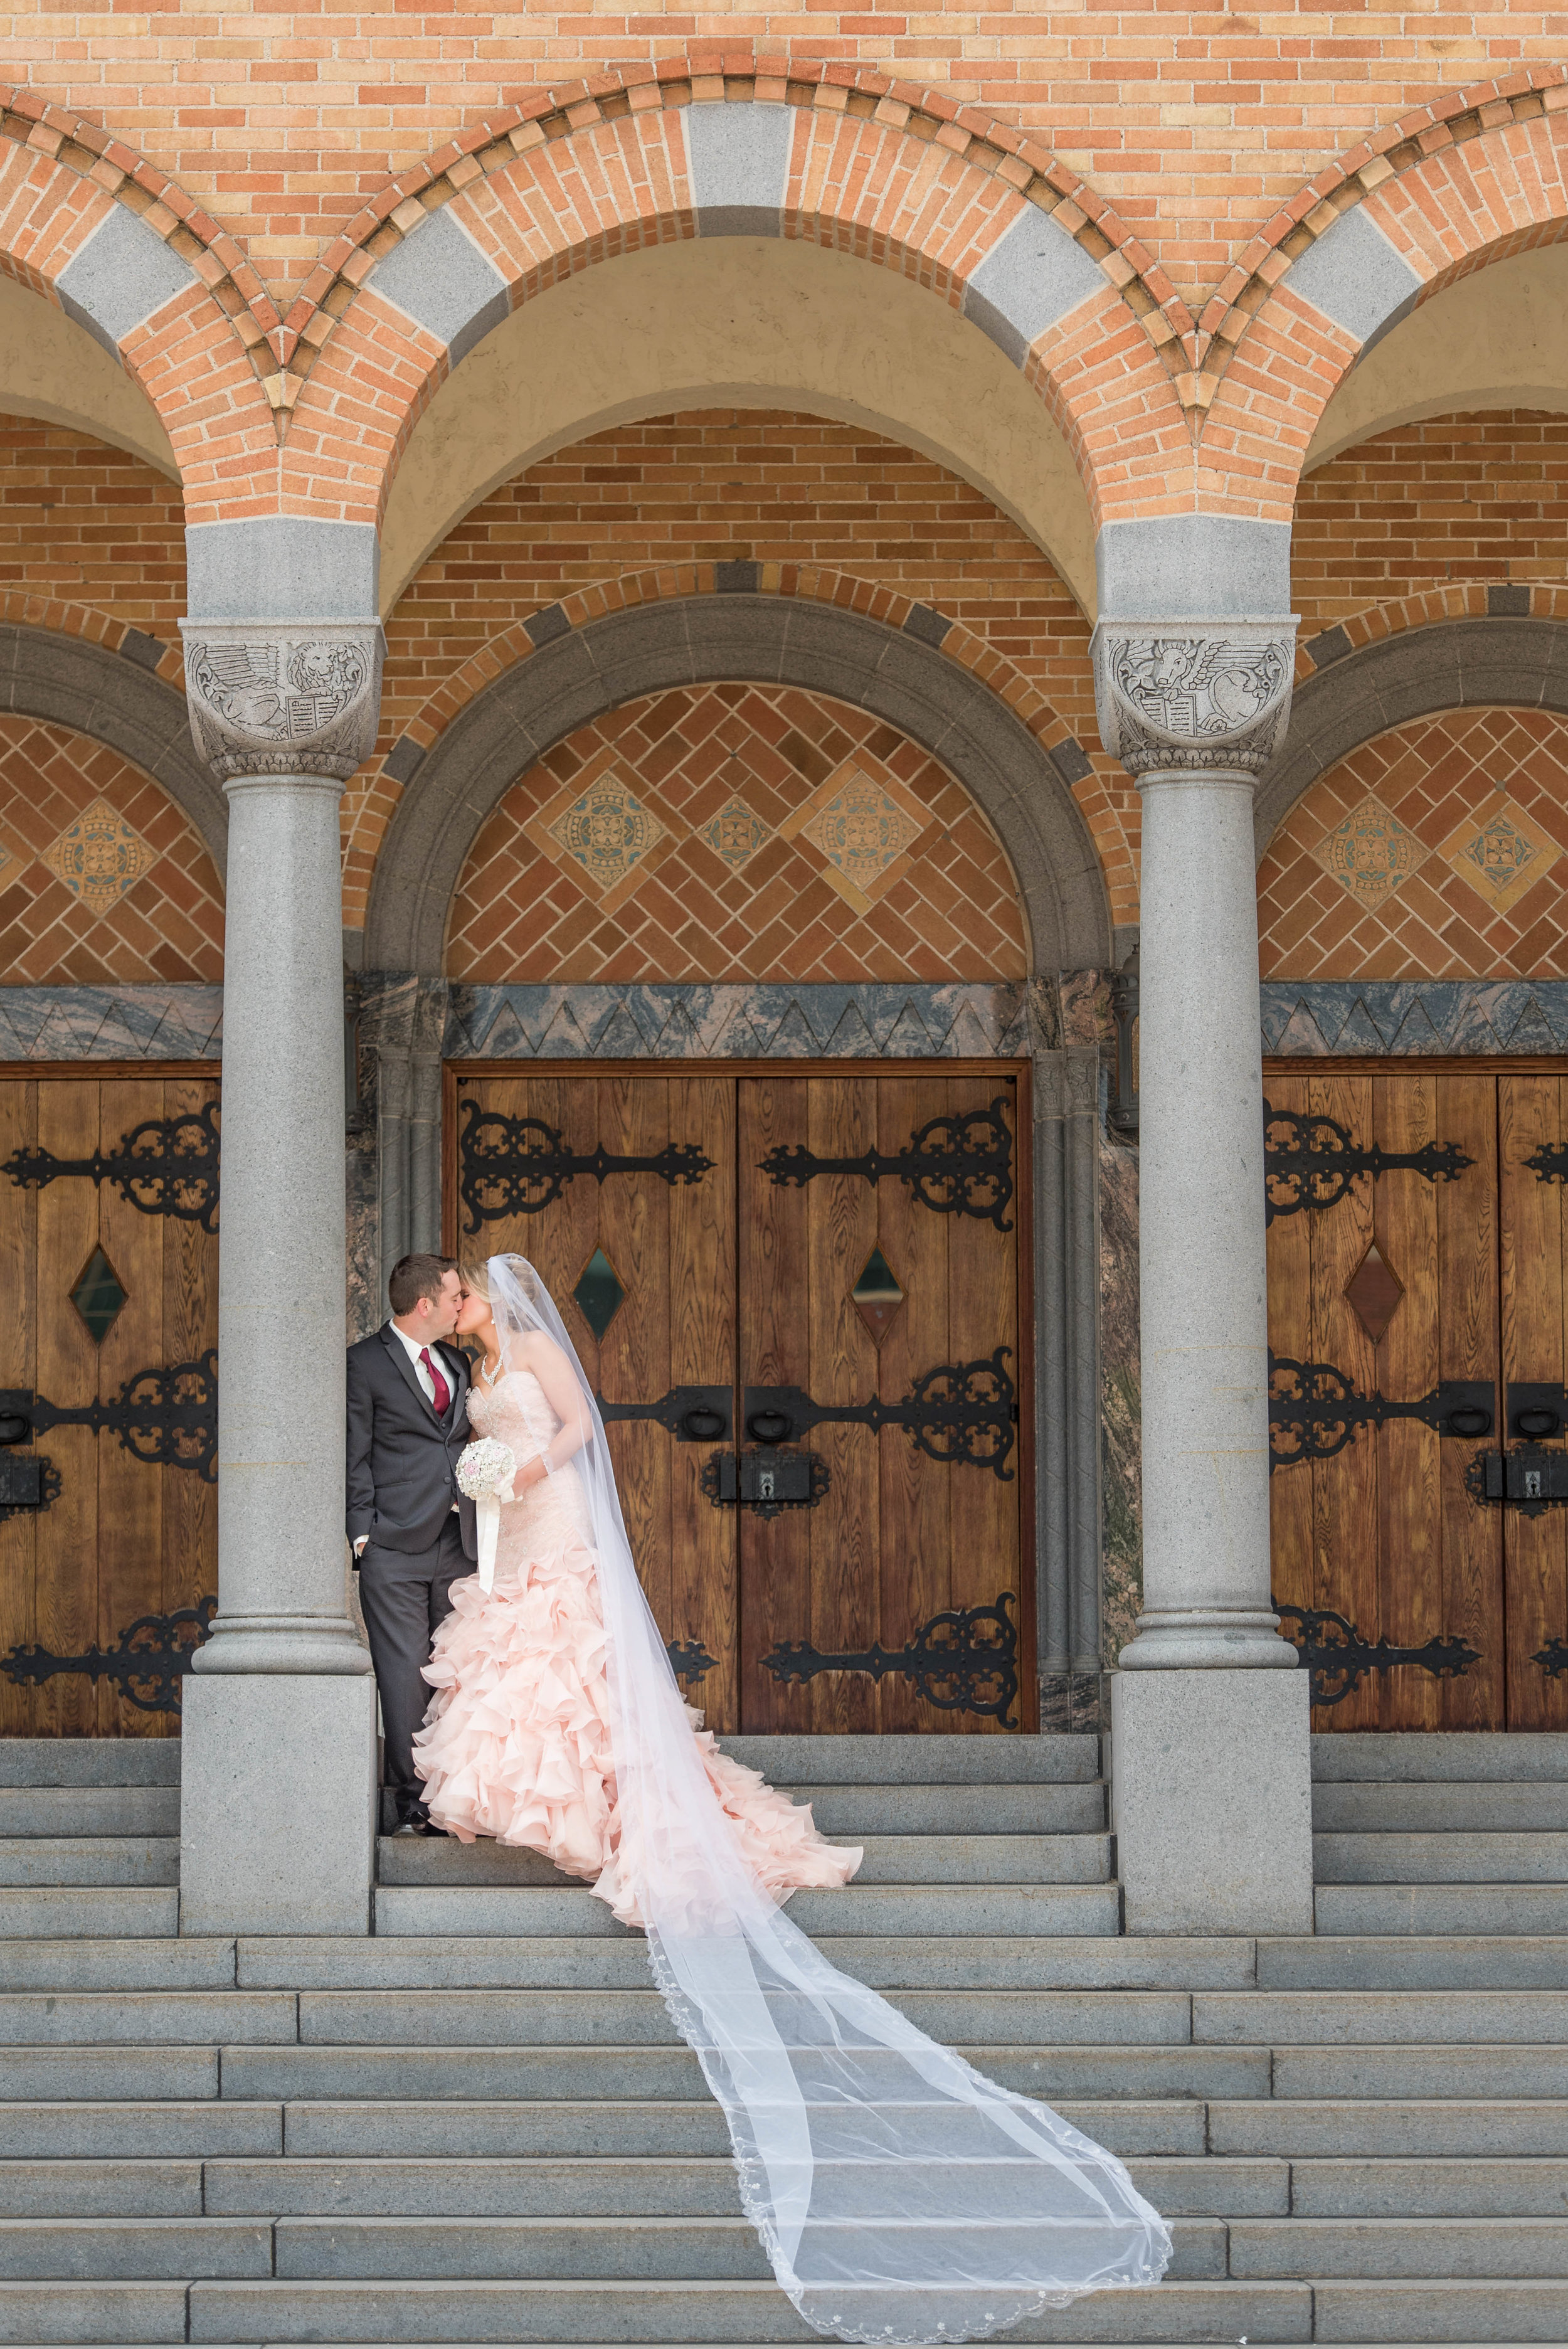 St. Mary's in downtown St. Cloud provided a majestic location for Mariah and Mike